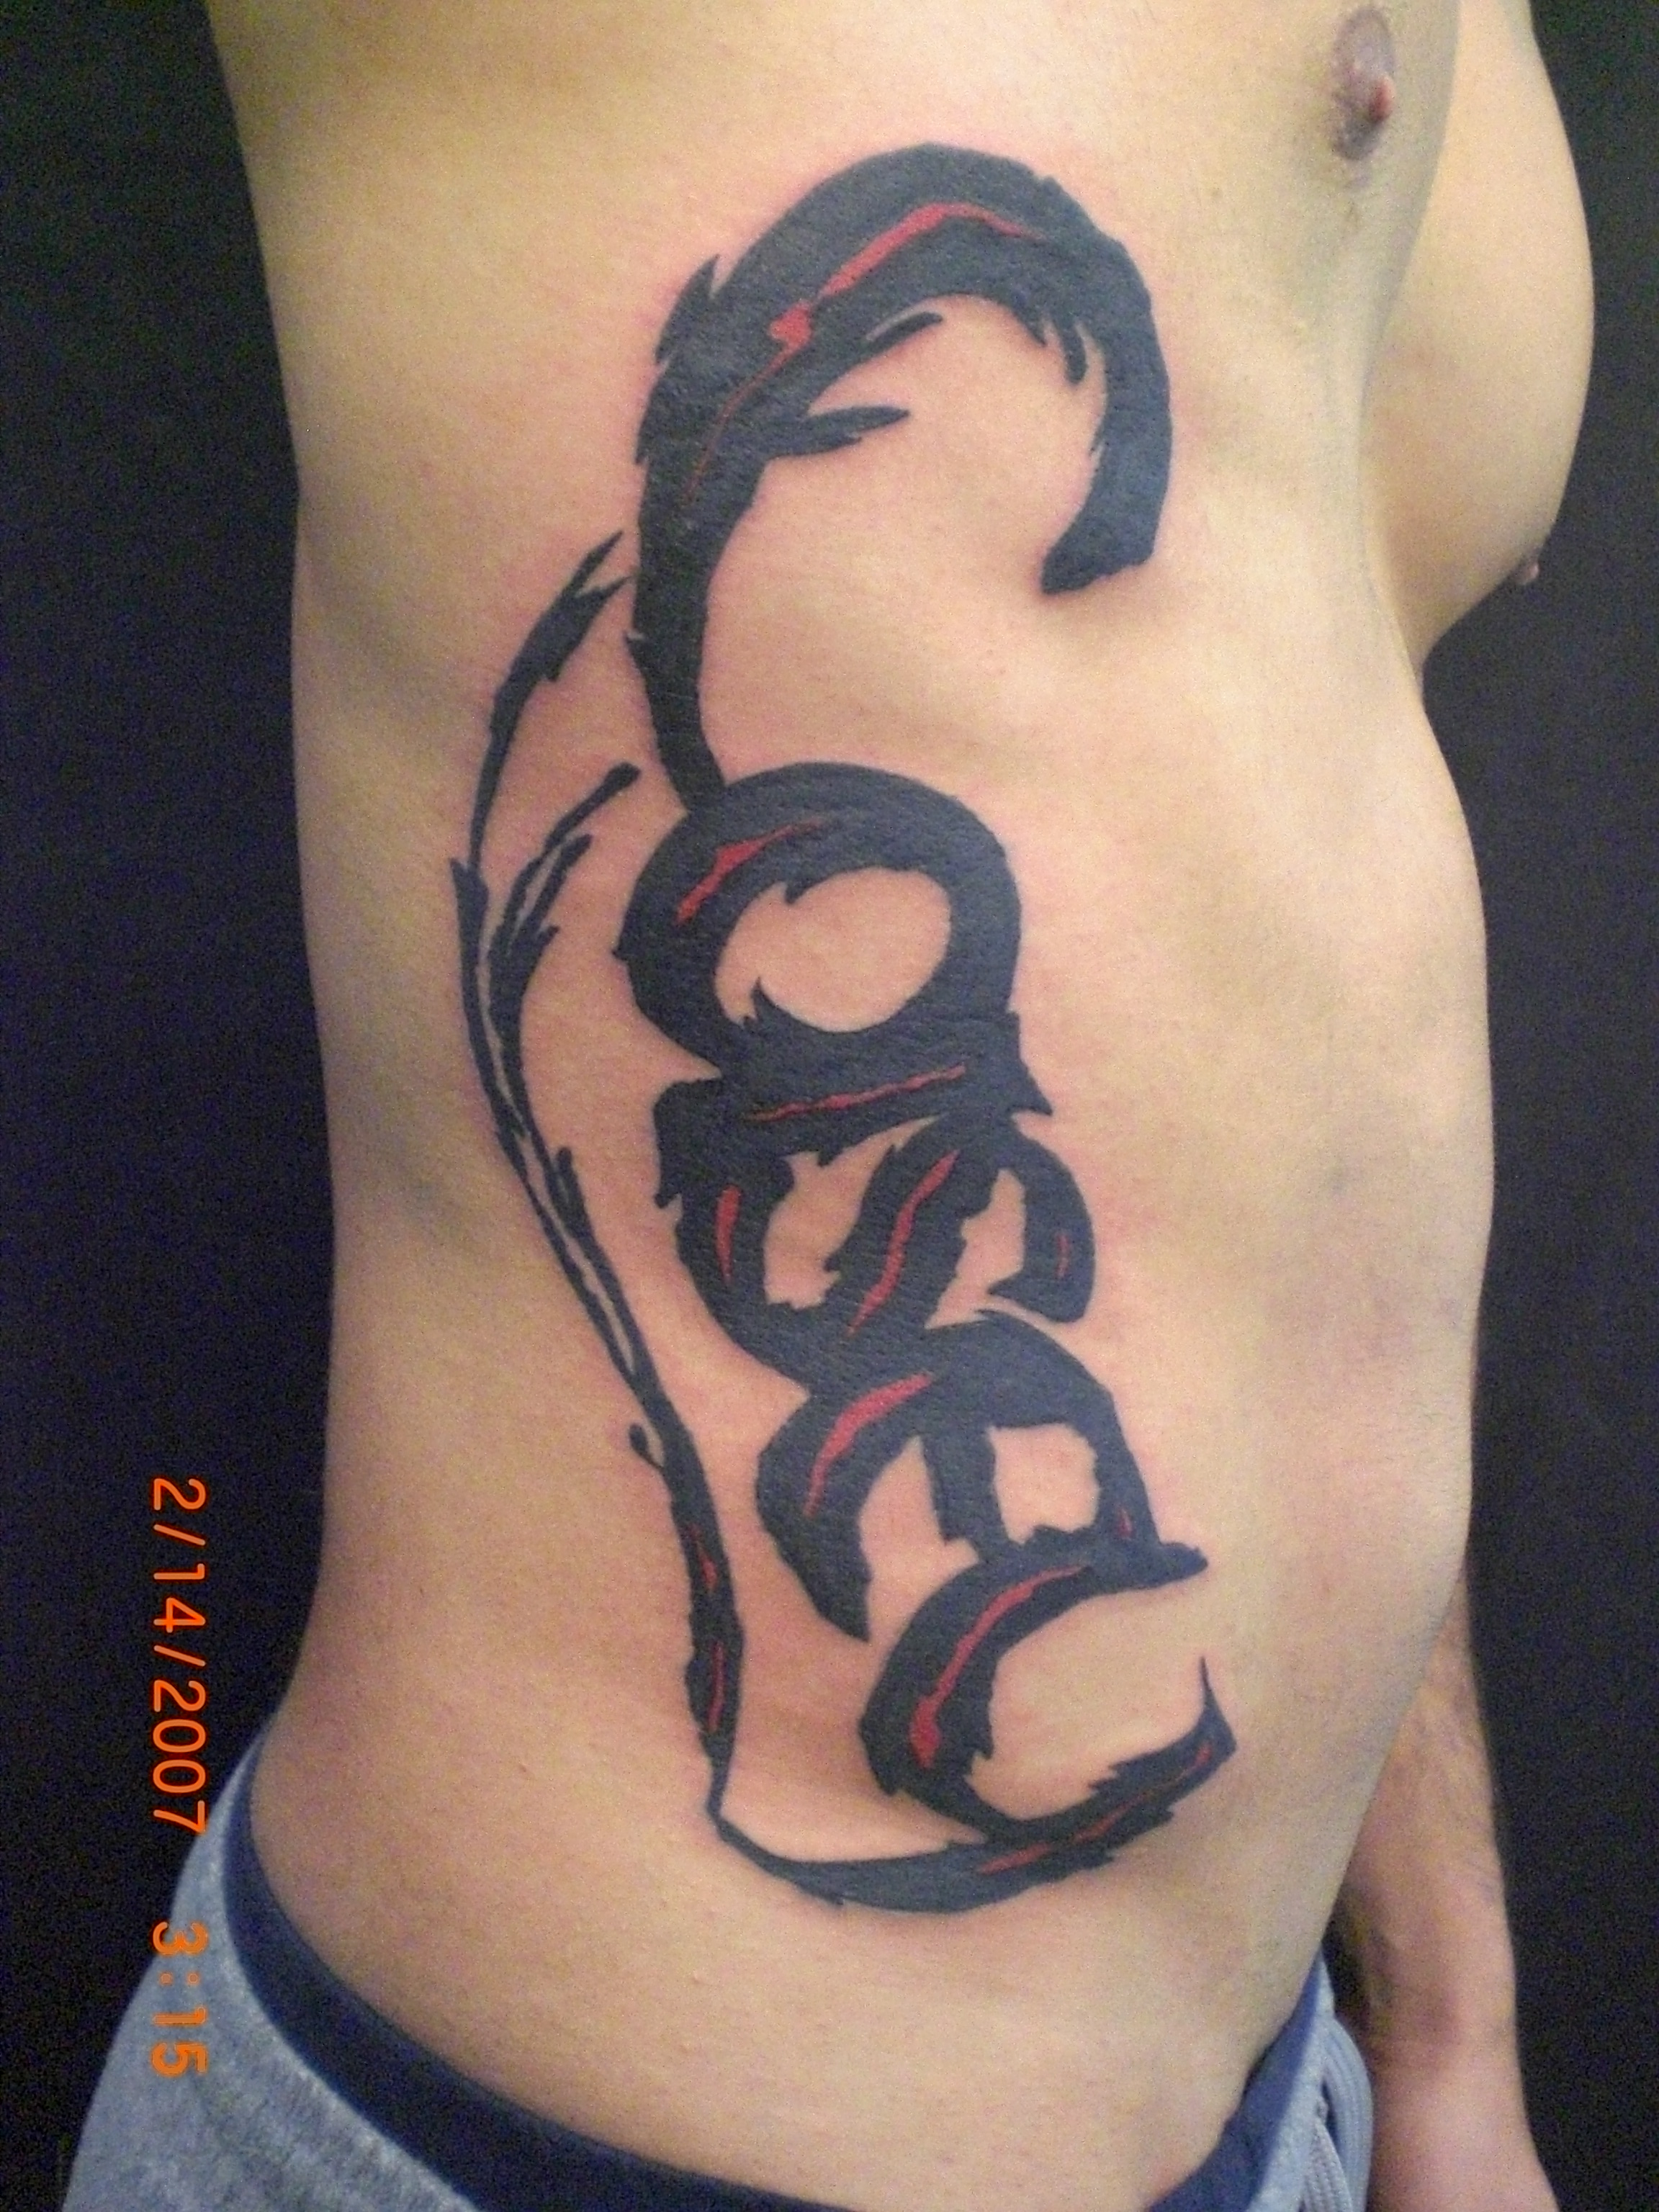 https://0201.nccdn.net/1_2/000/000/10e/62d/Moe-Jordan--Big-Daddy-s-Tattoos--Okc--Ok--4-.JPG